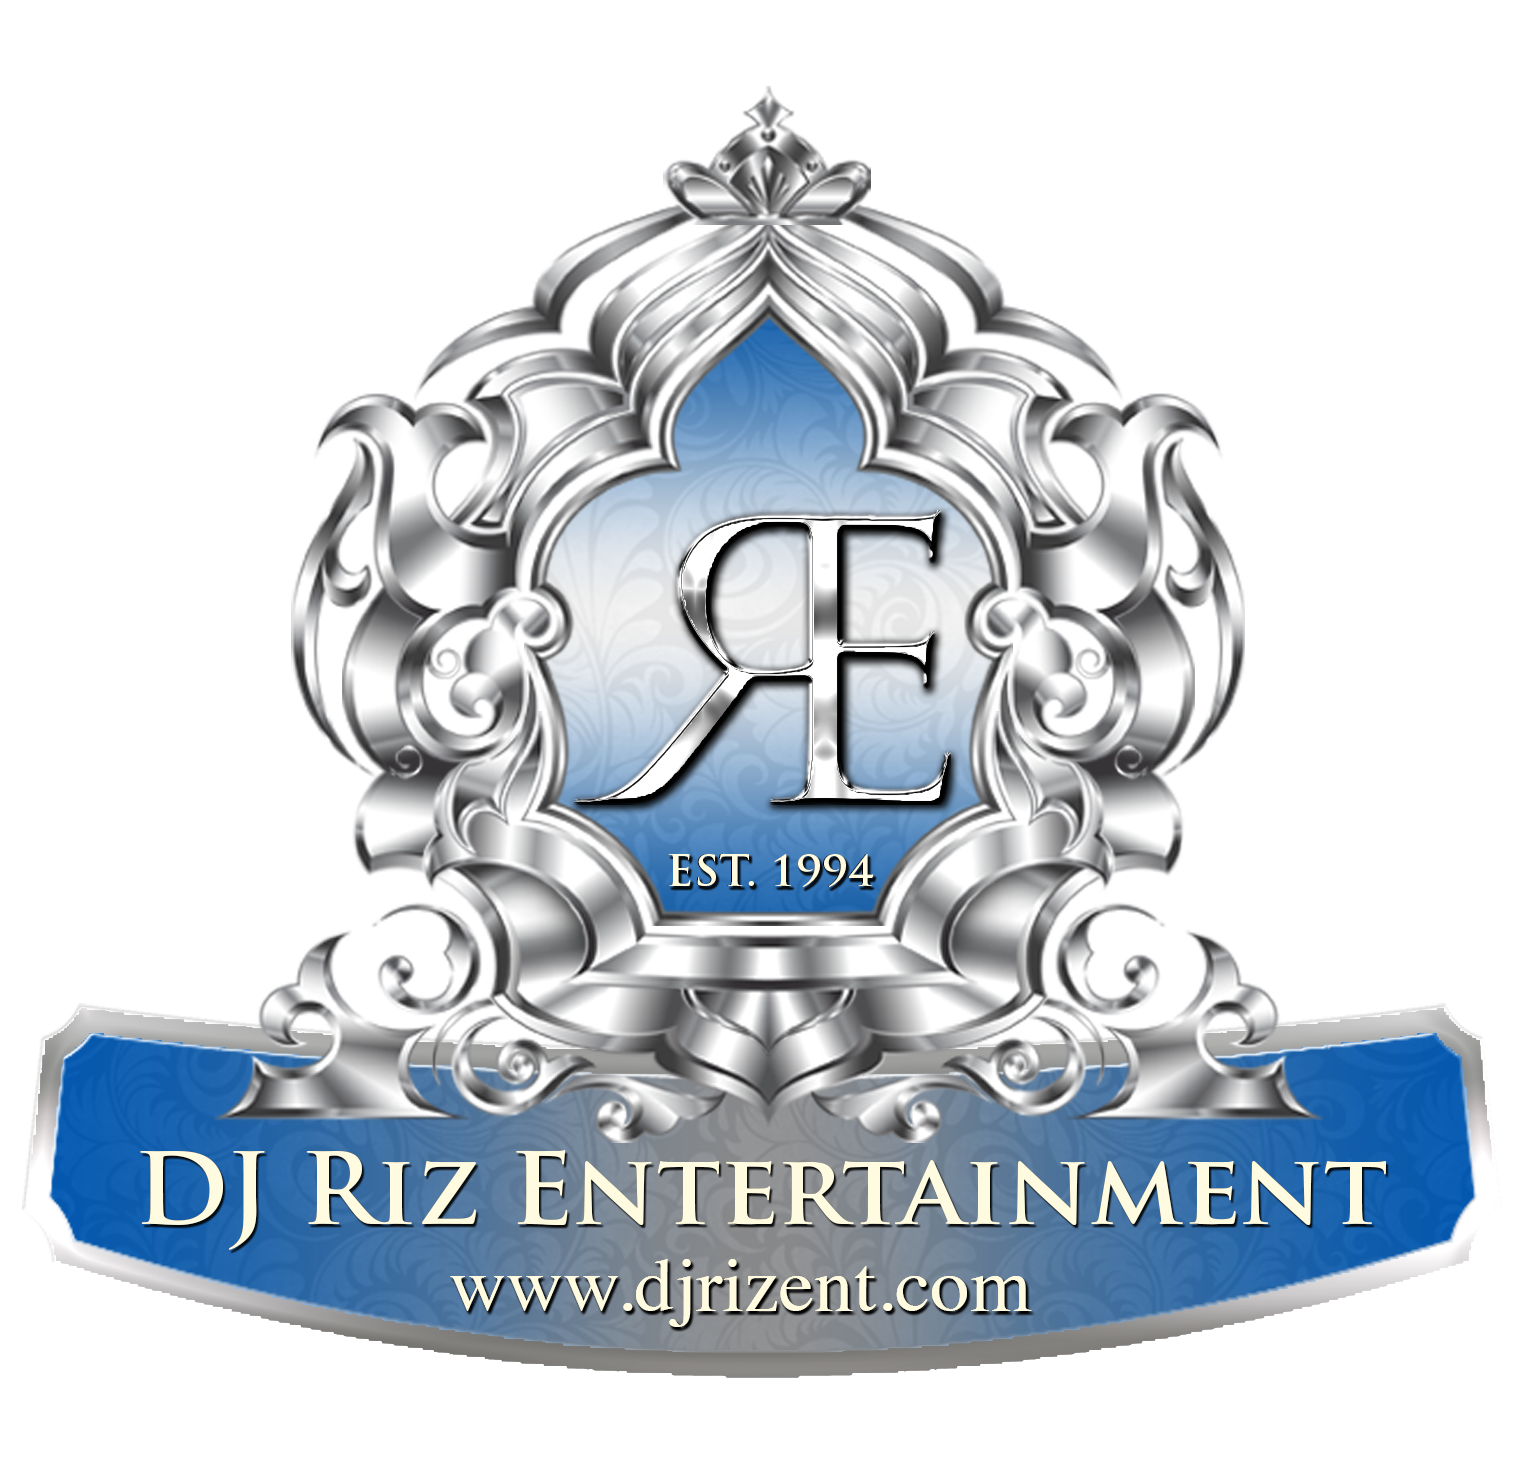 DJ Riz Entertainment